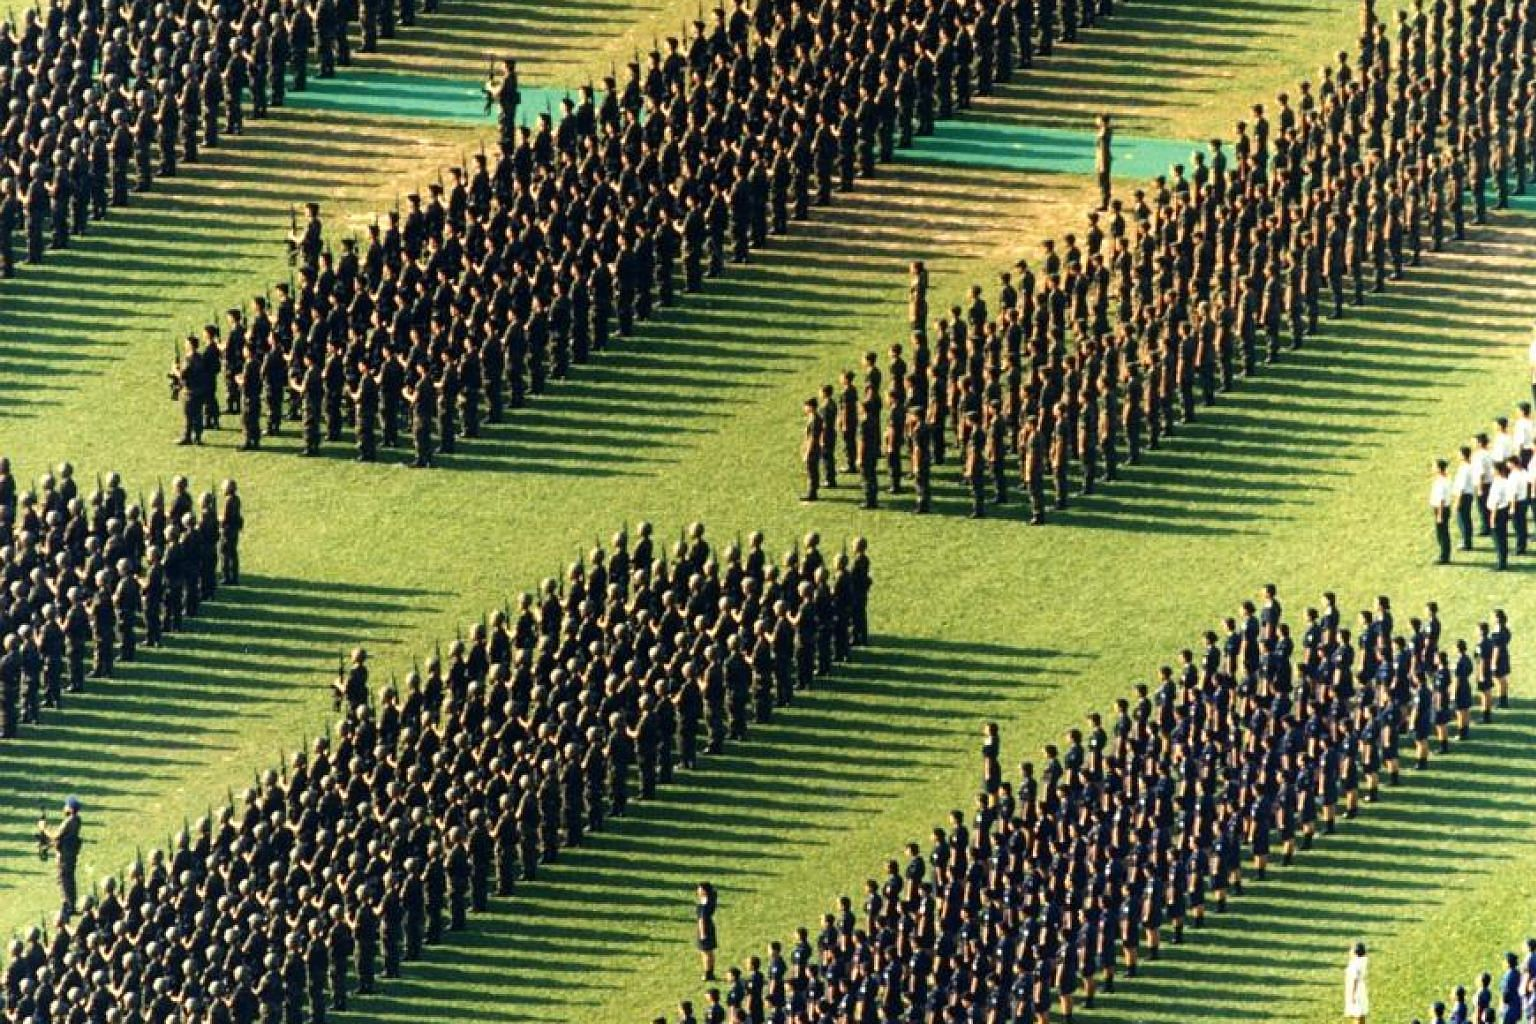 Marching contingents standing ramrod-straight for a rifle salute at the NDP rehearsal at the Padang in 1993.